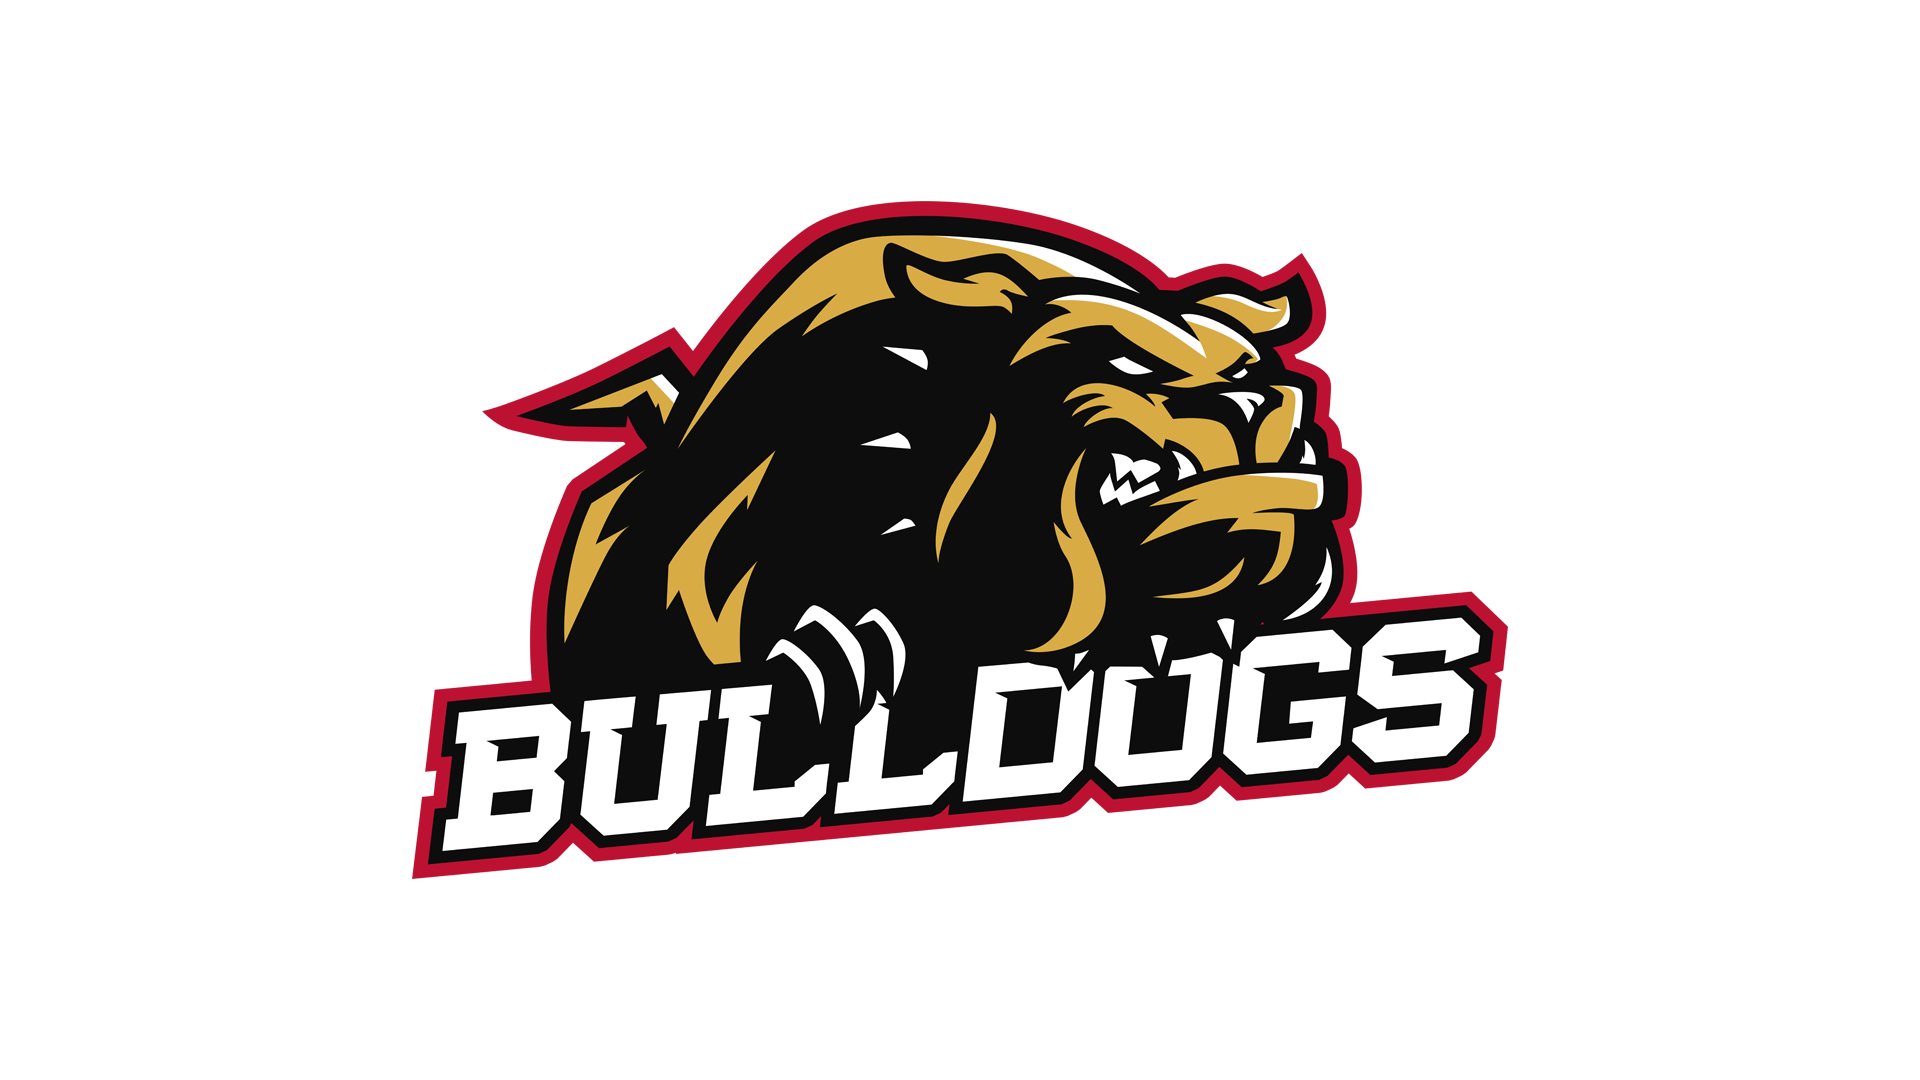 Bulldogs Hamburgueria